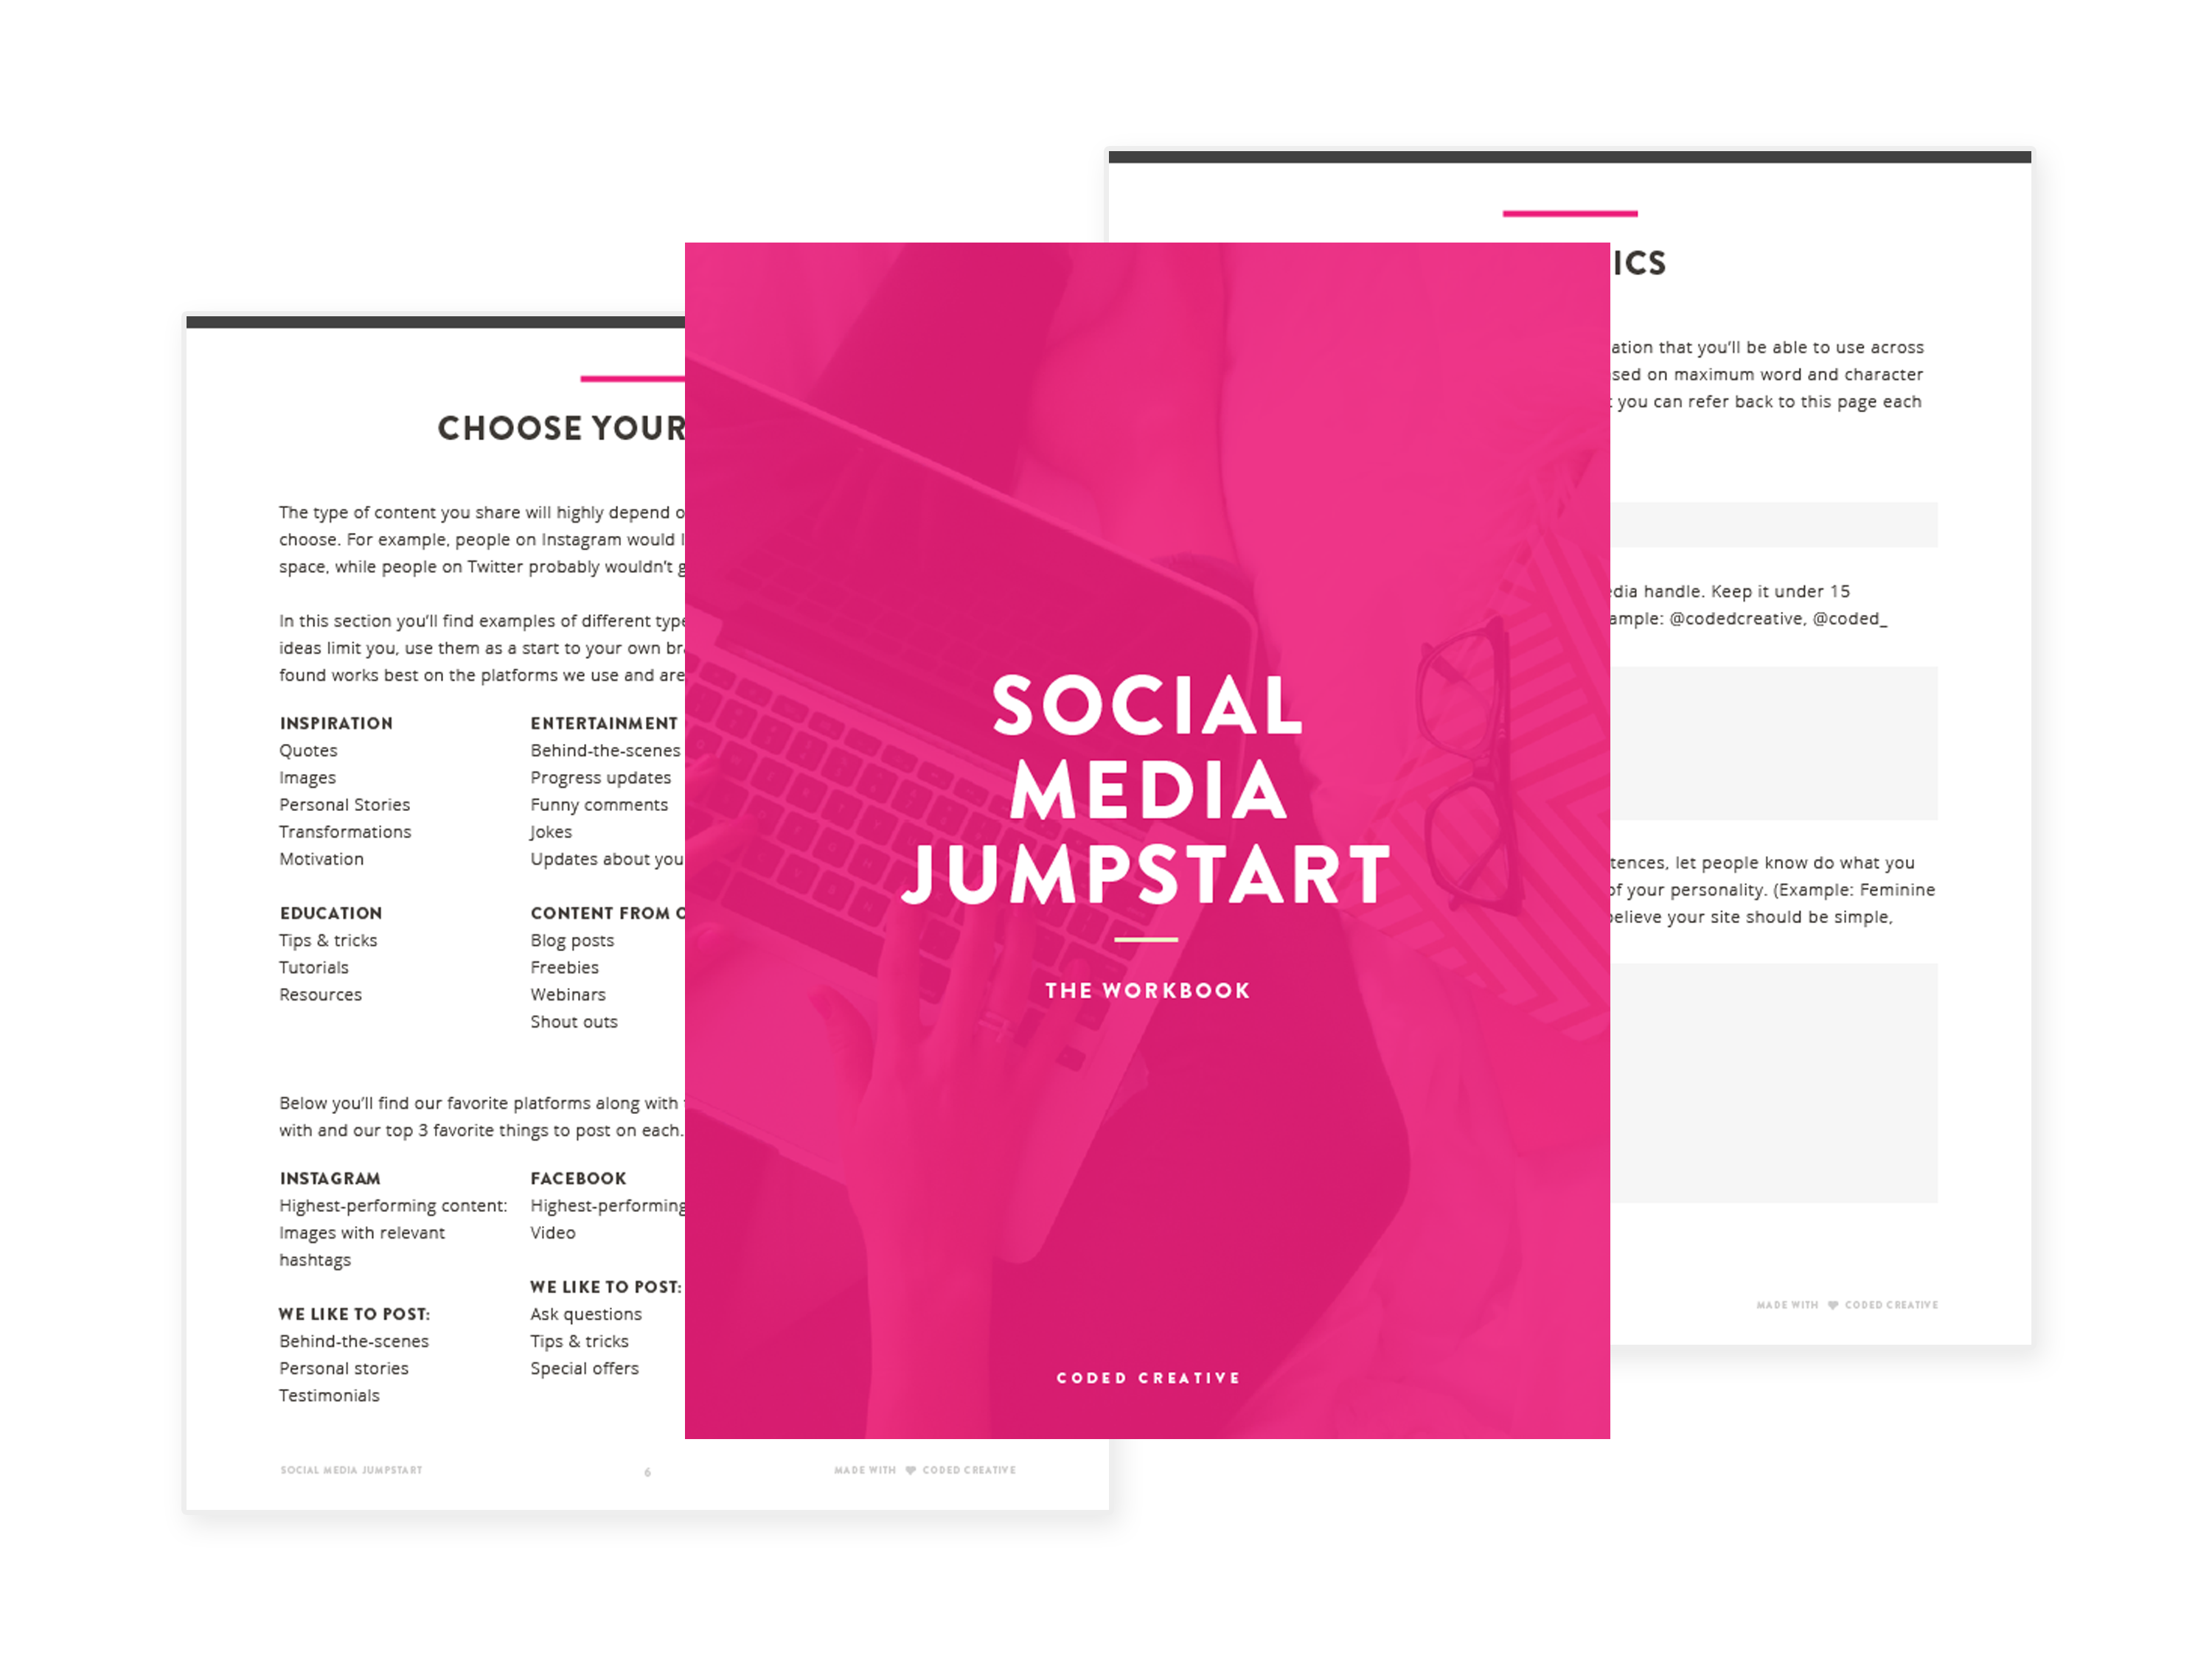 Social Media Jumpstart Workbook